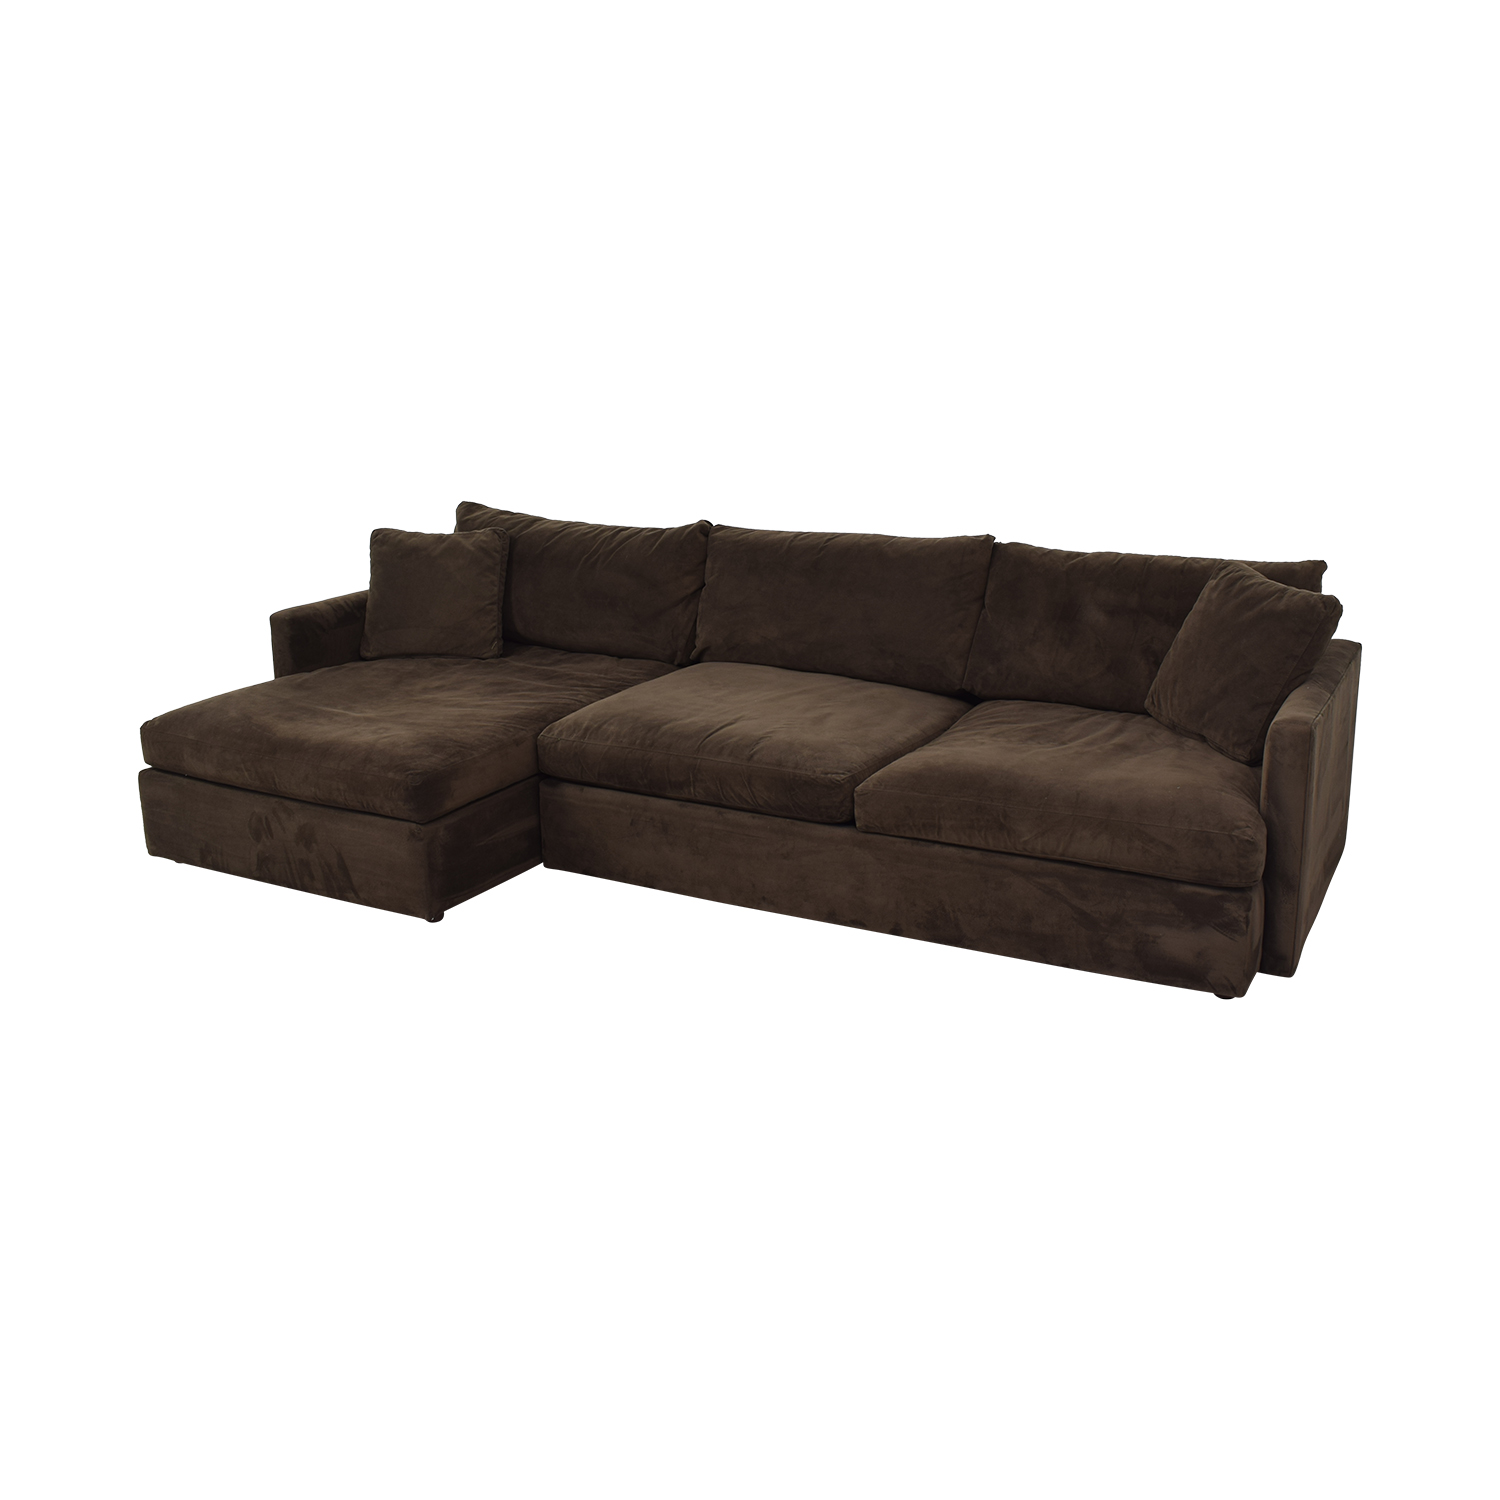 buy Crate & Barrel Sofa Sectional with Chaise Crate & Barrel Sectionals